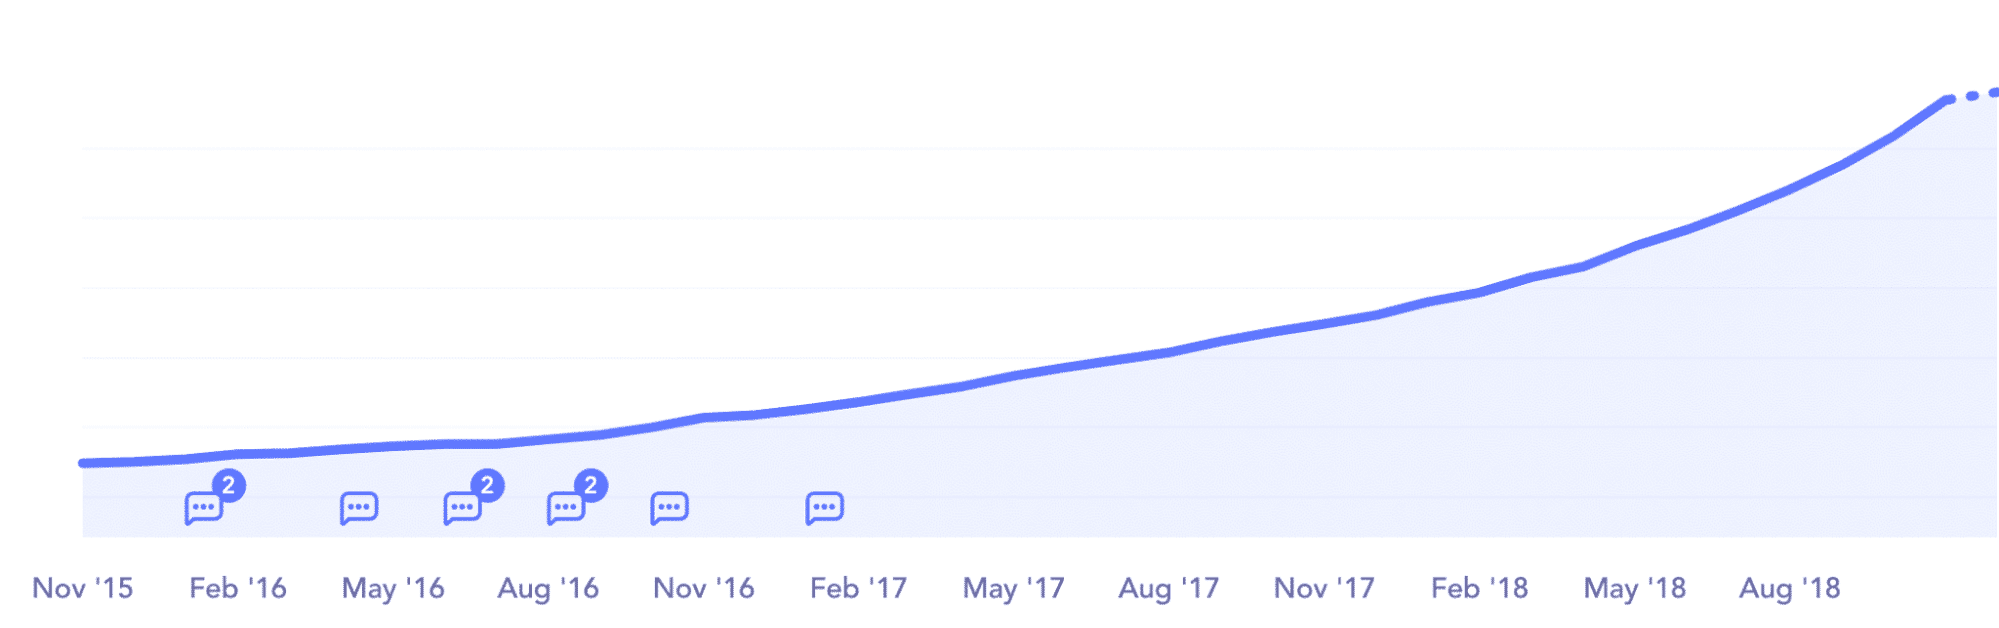 Kinsta ARR growth